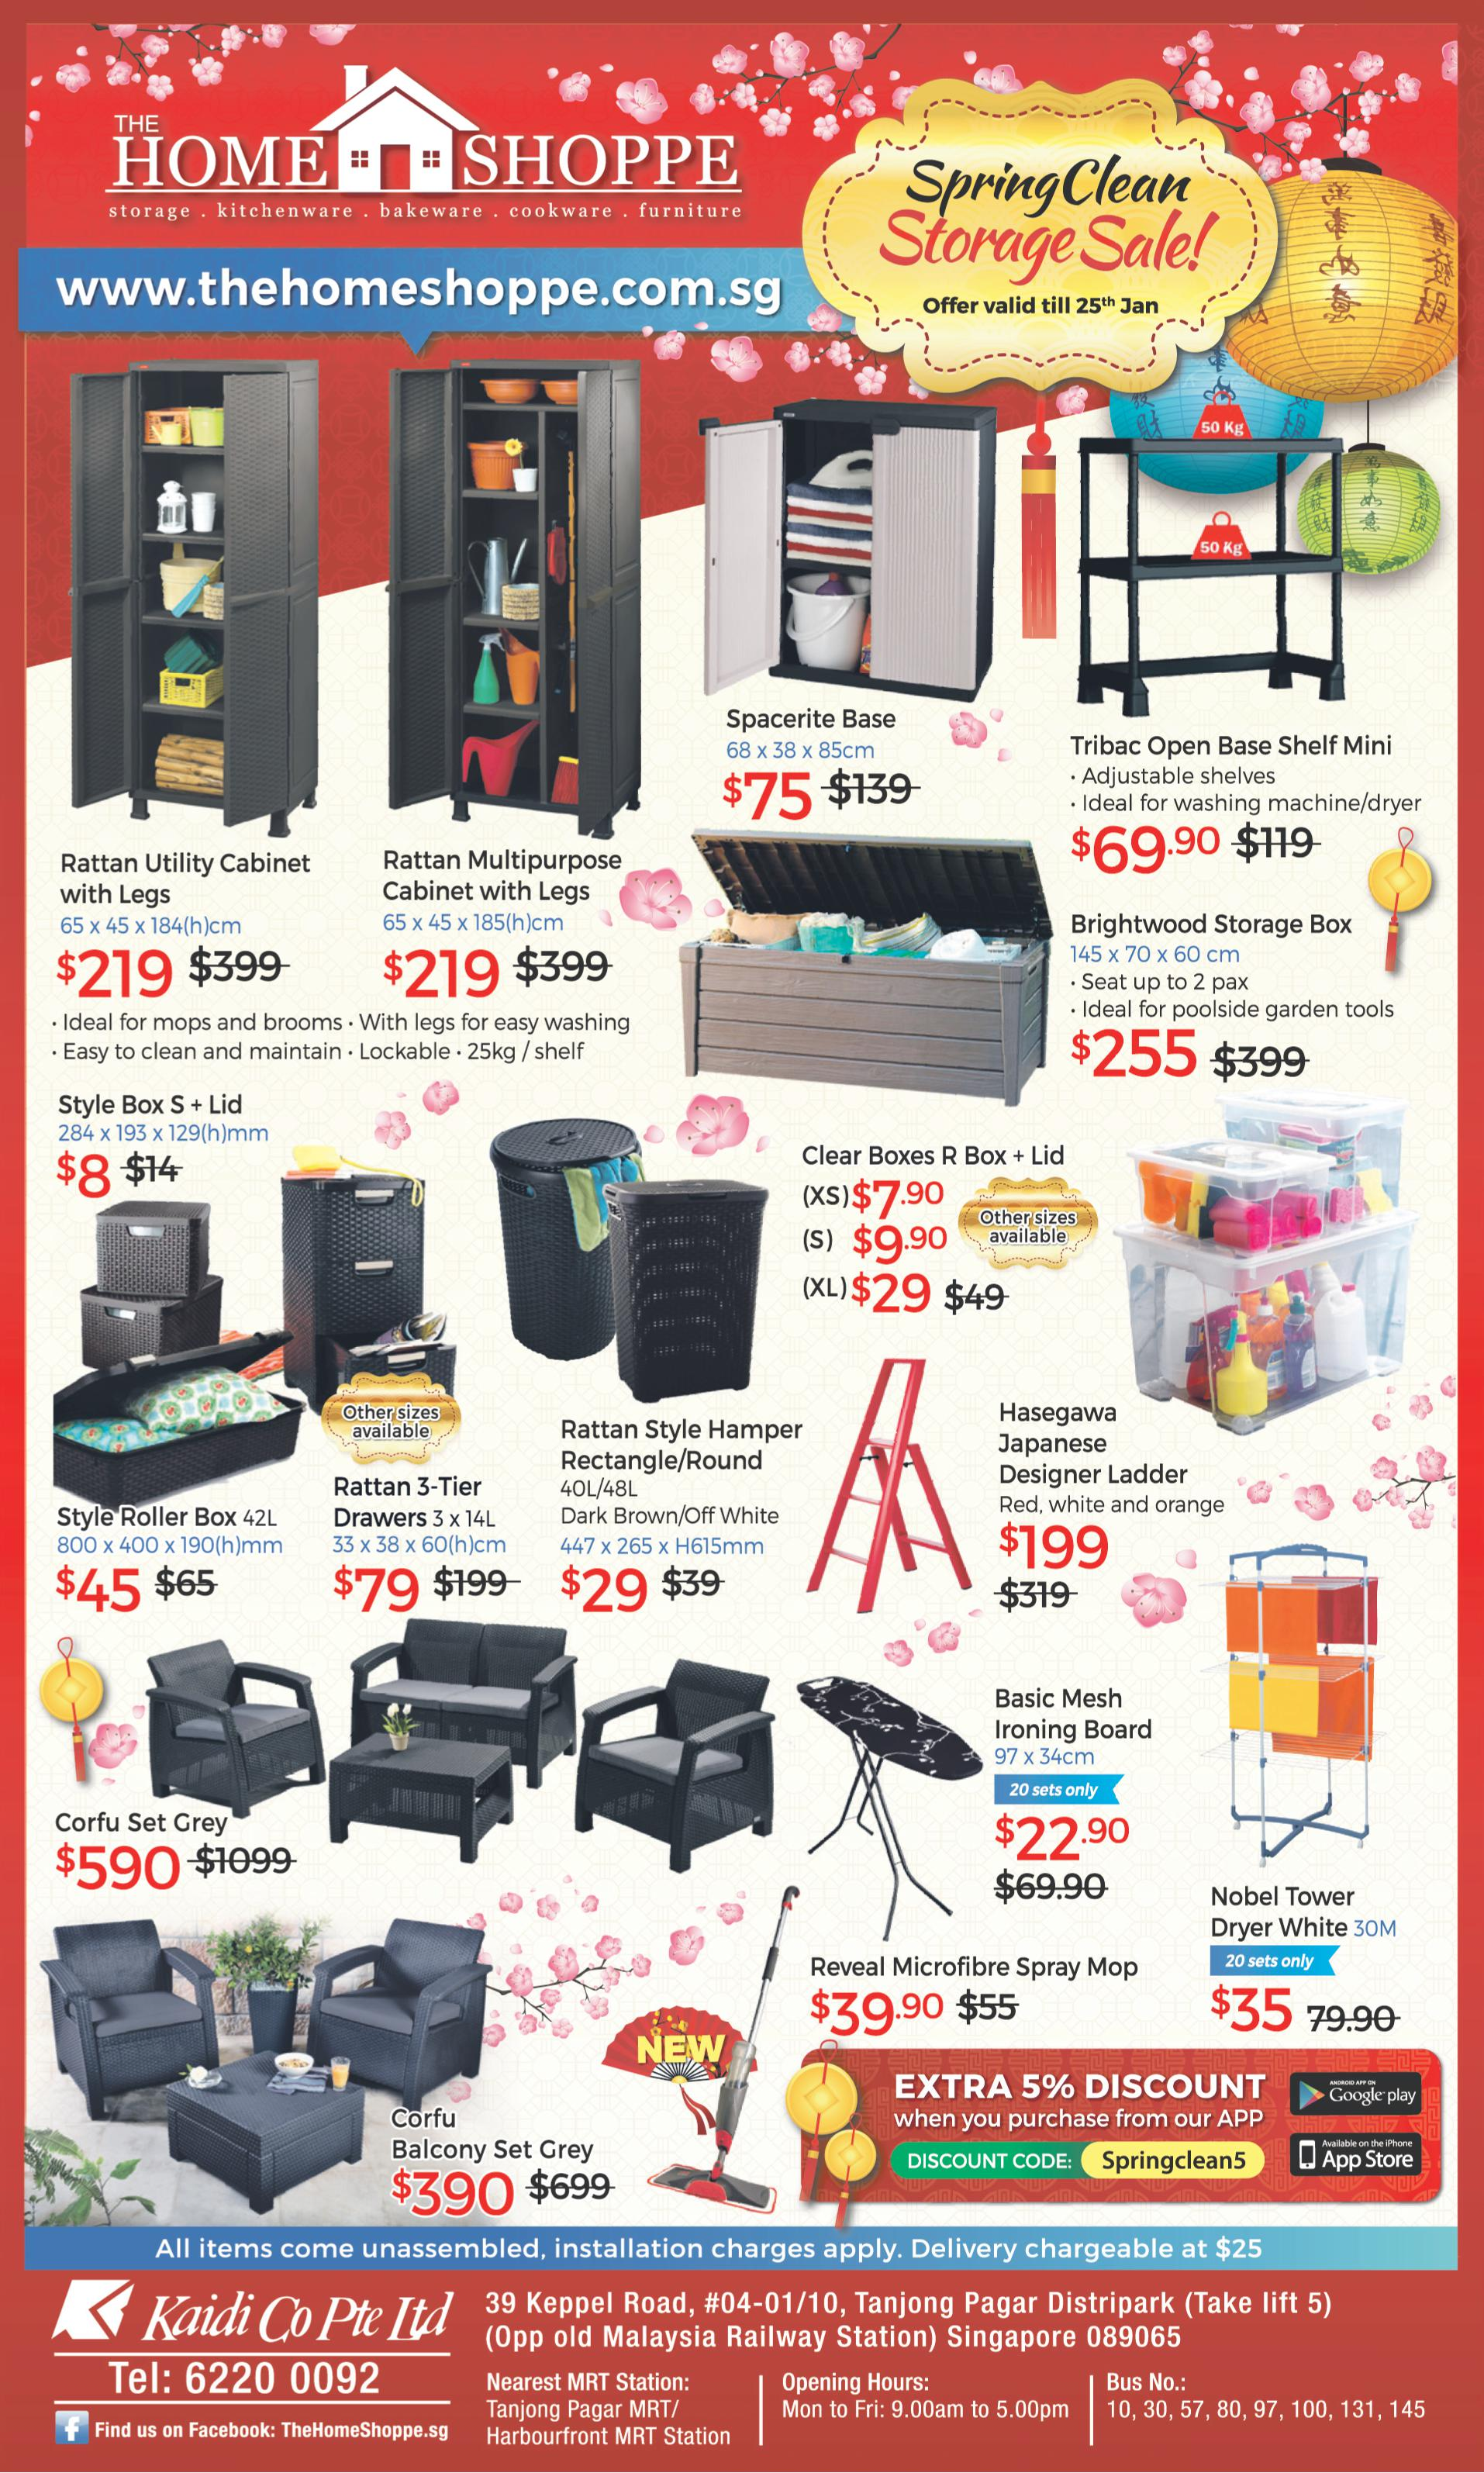 Spring clean storage sale till 25th jan 2017 the home for Furniture year end sale 2017